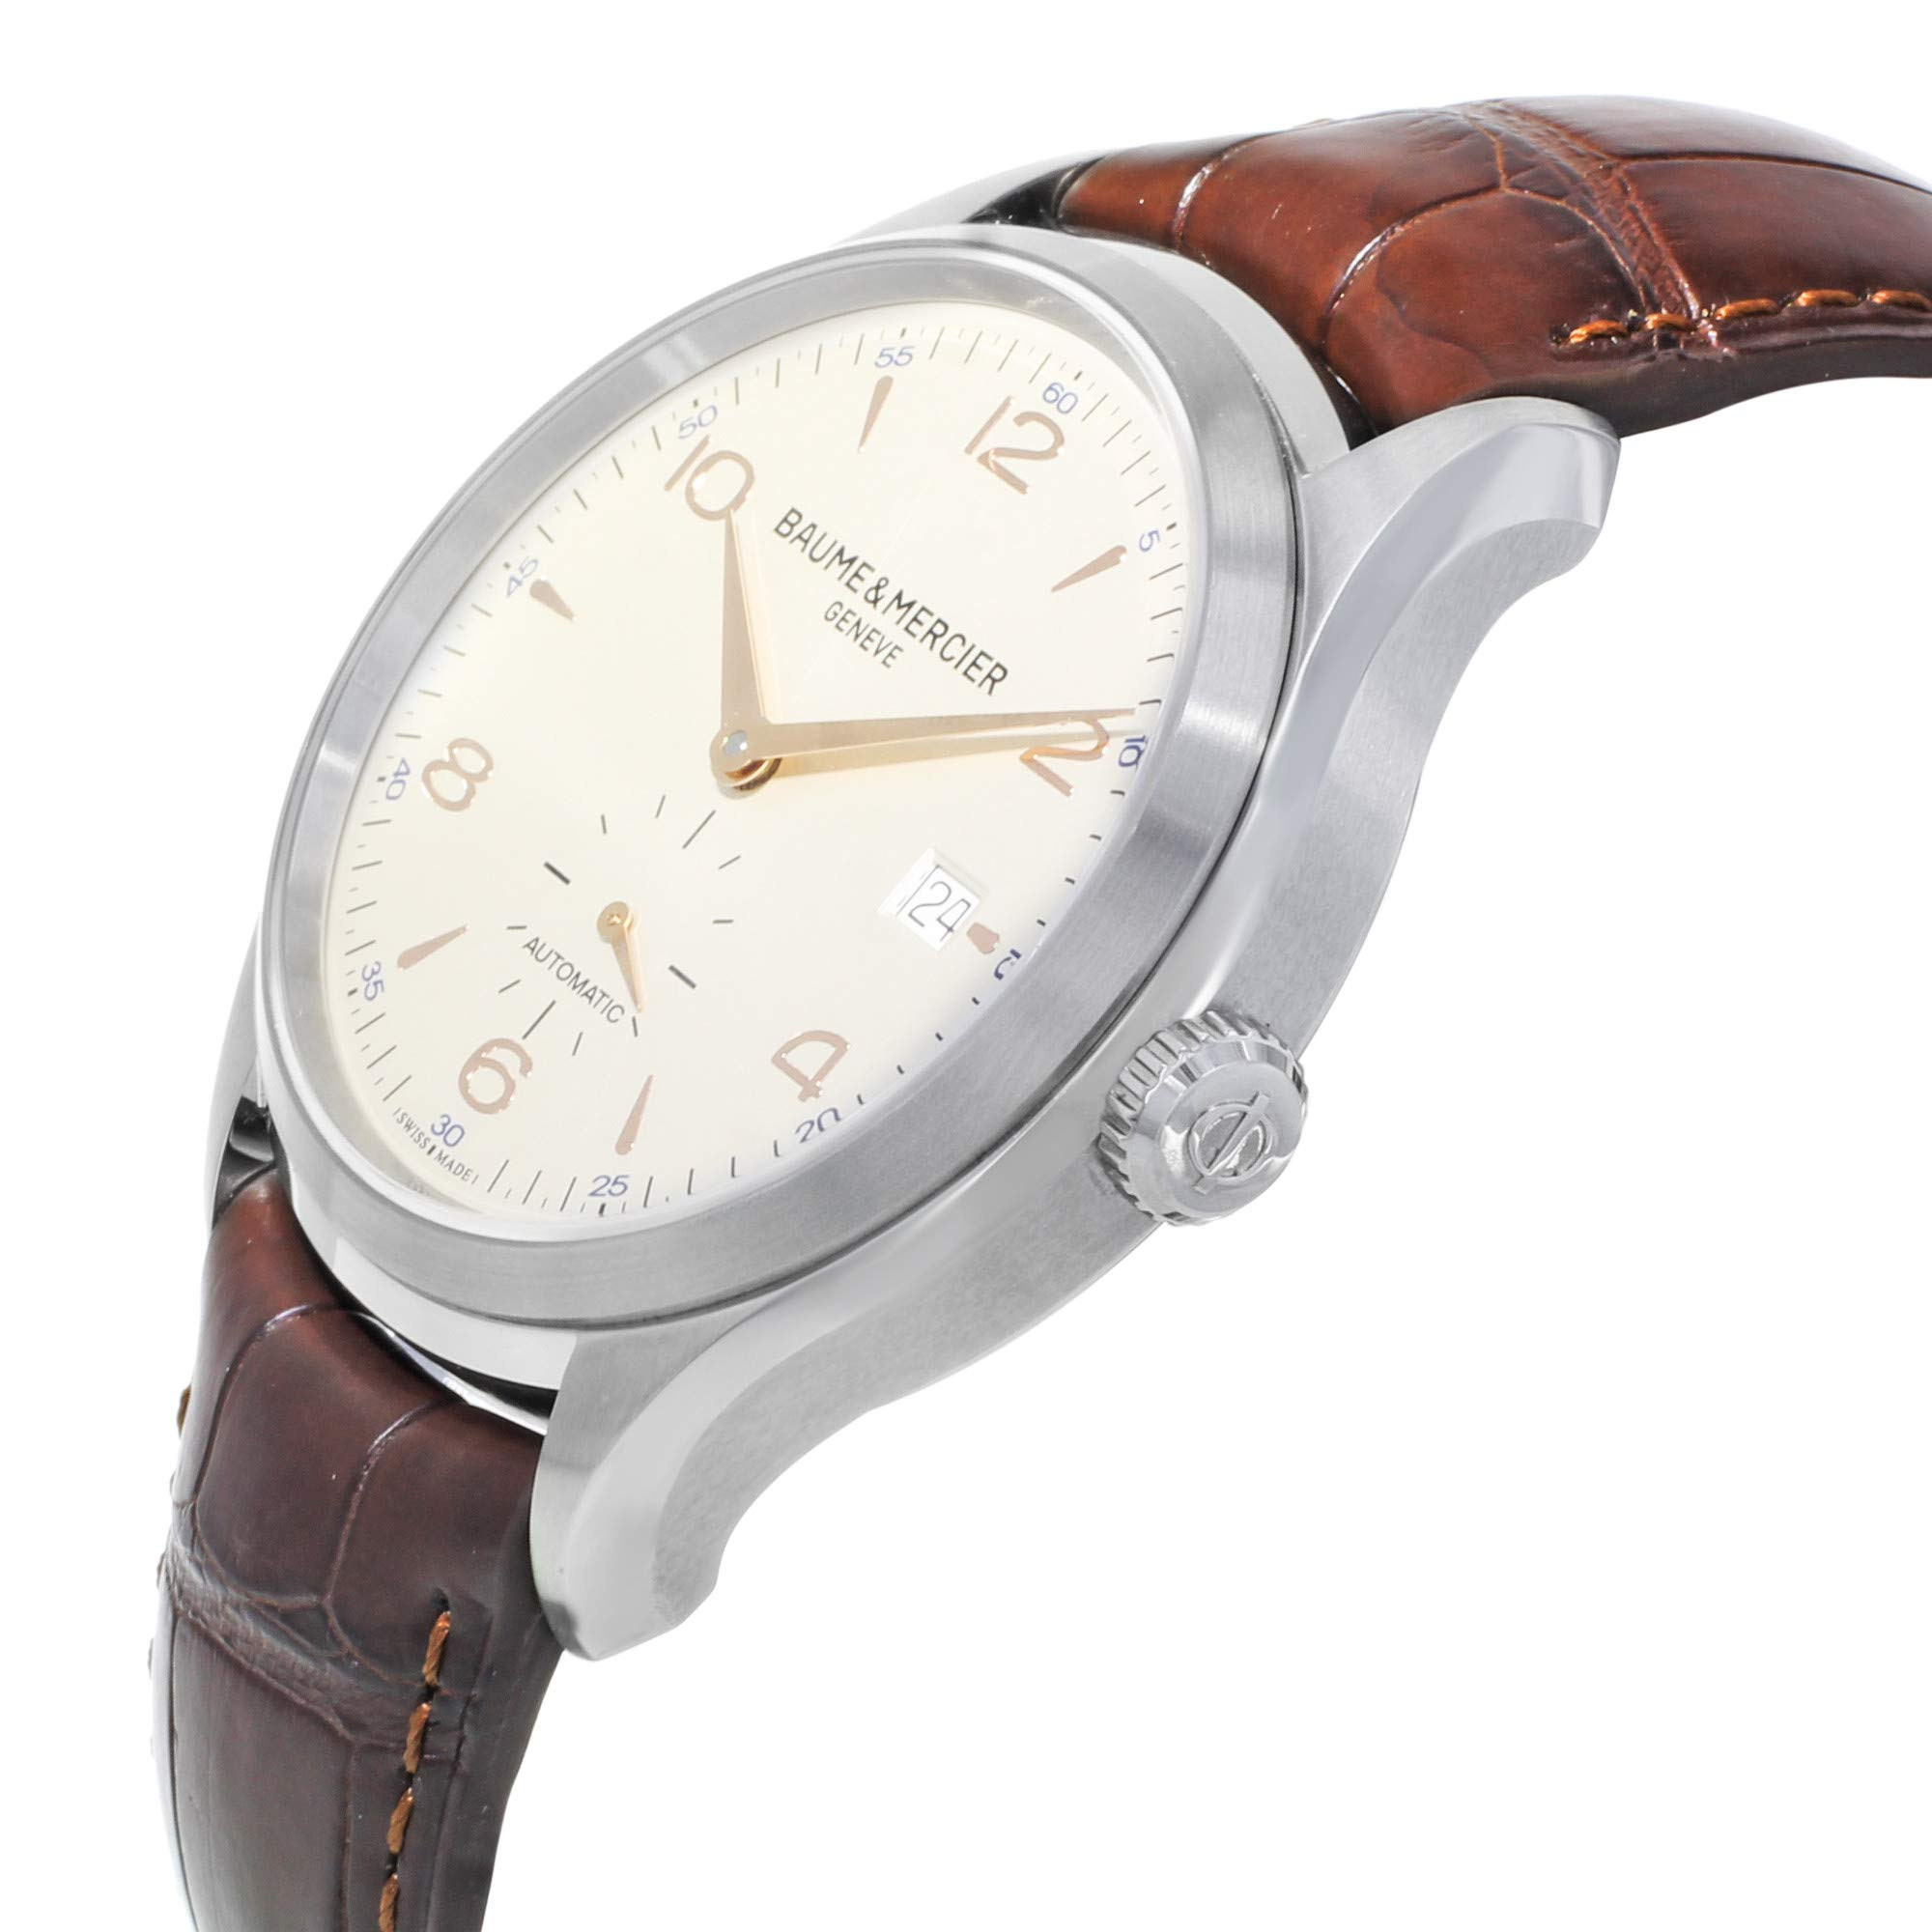 Baume & Mercier Clifton Automatic-self-Wind Male Watch MOA10054 (Certified Pre-Owned) by Baume & Mercier (Image #3)